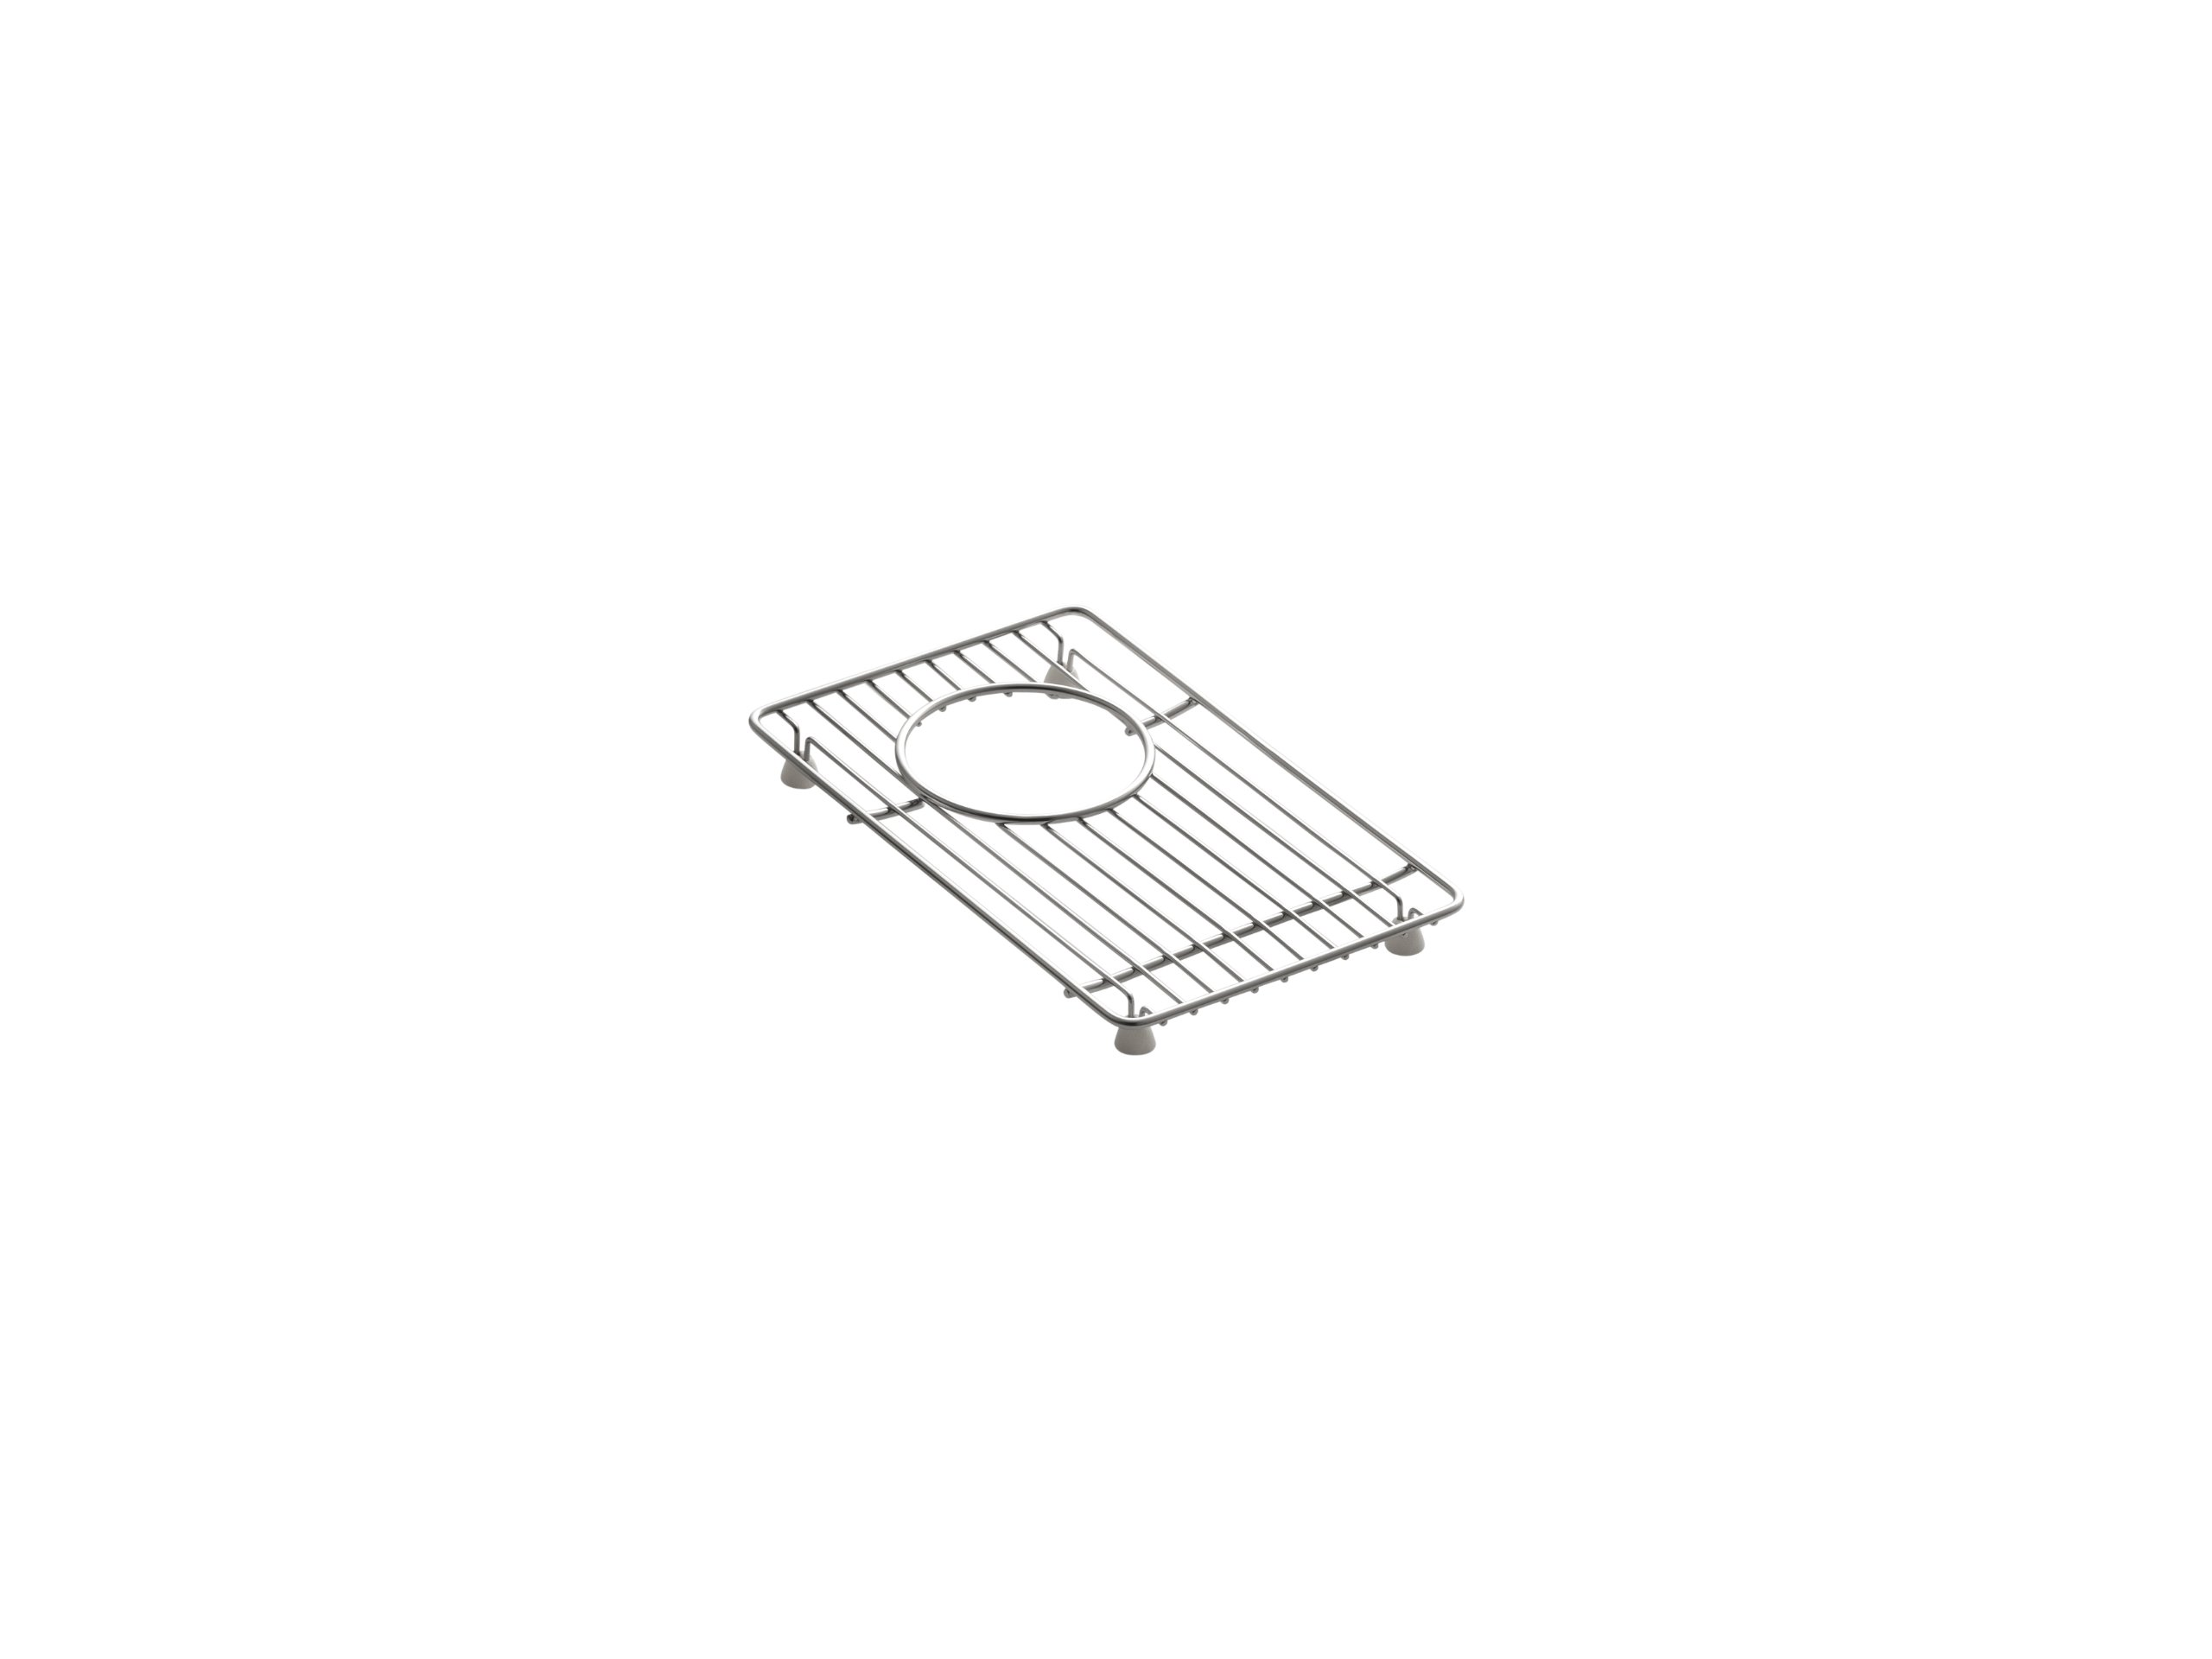 Kohler K-6163-ST Bottom Basin Rack for Indio K-6411, Stainless Steel by Kohler